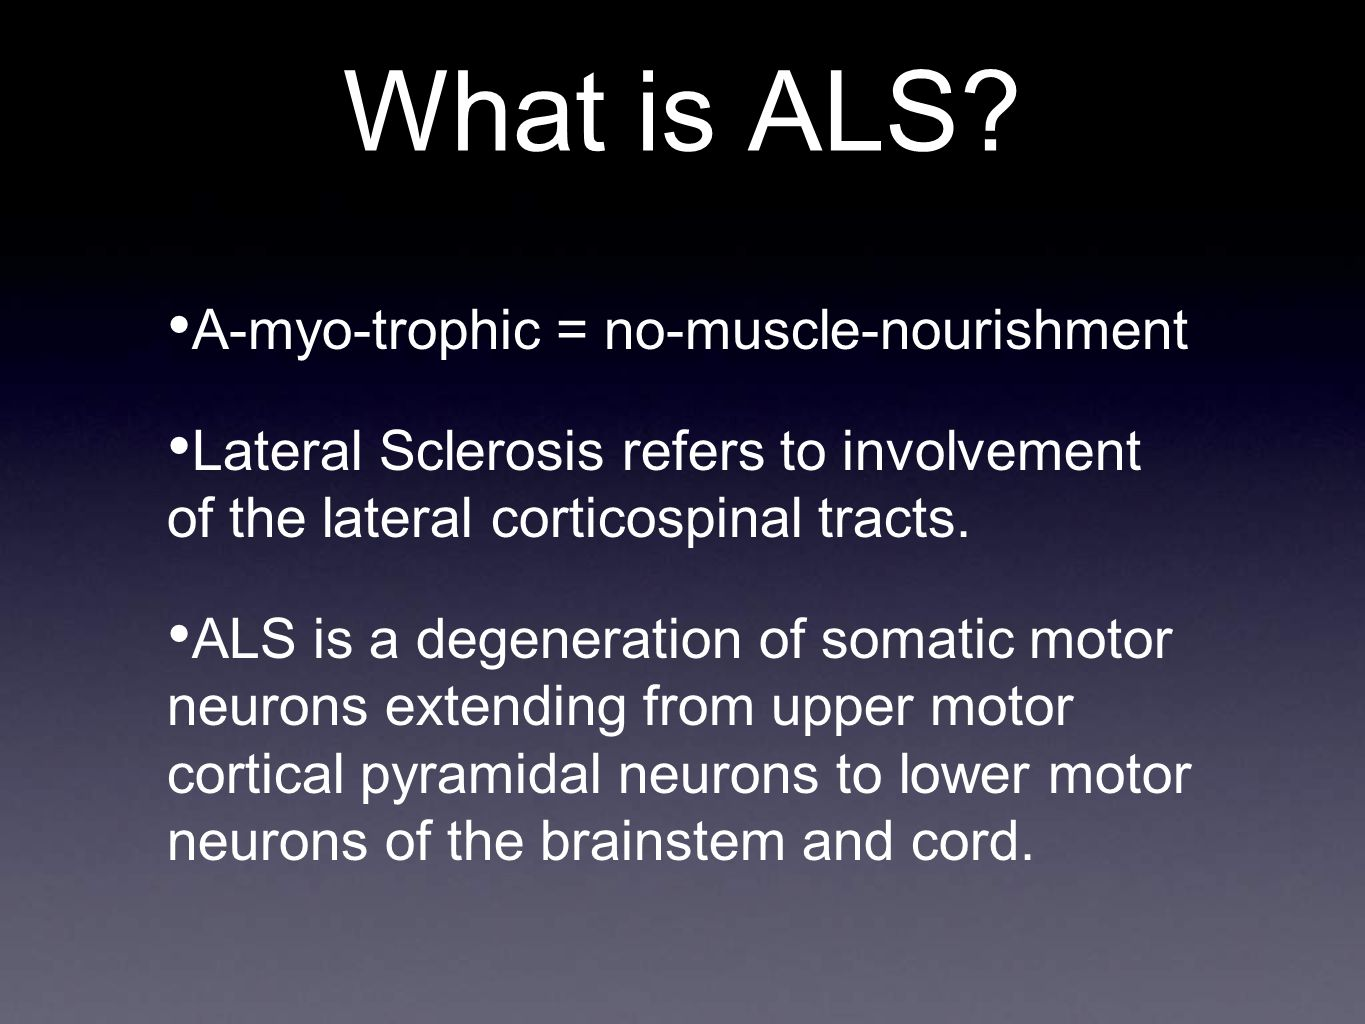 What is ALS A-myo-trophic = no-muscle-nourishment